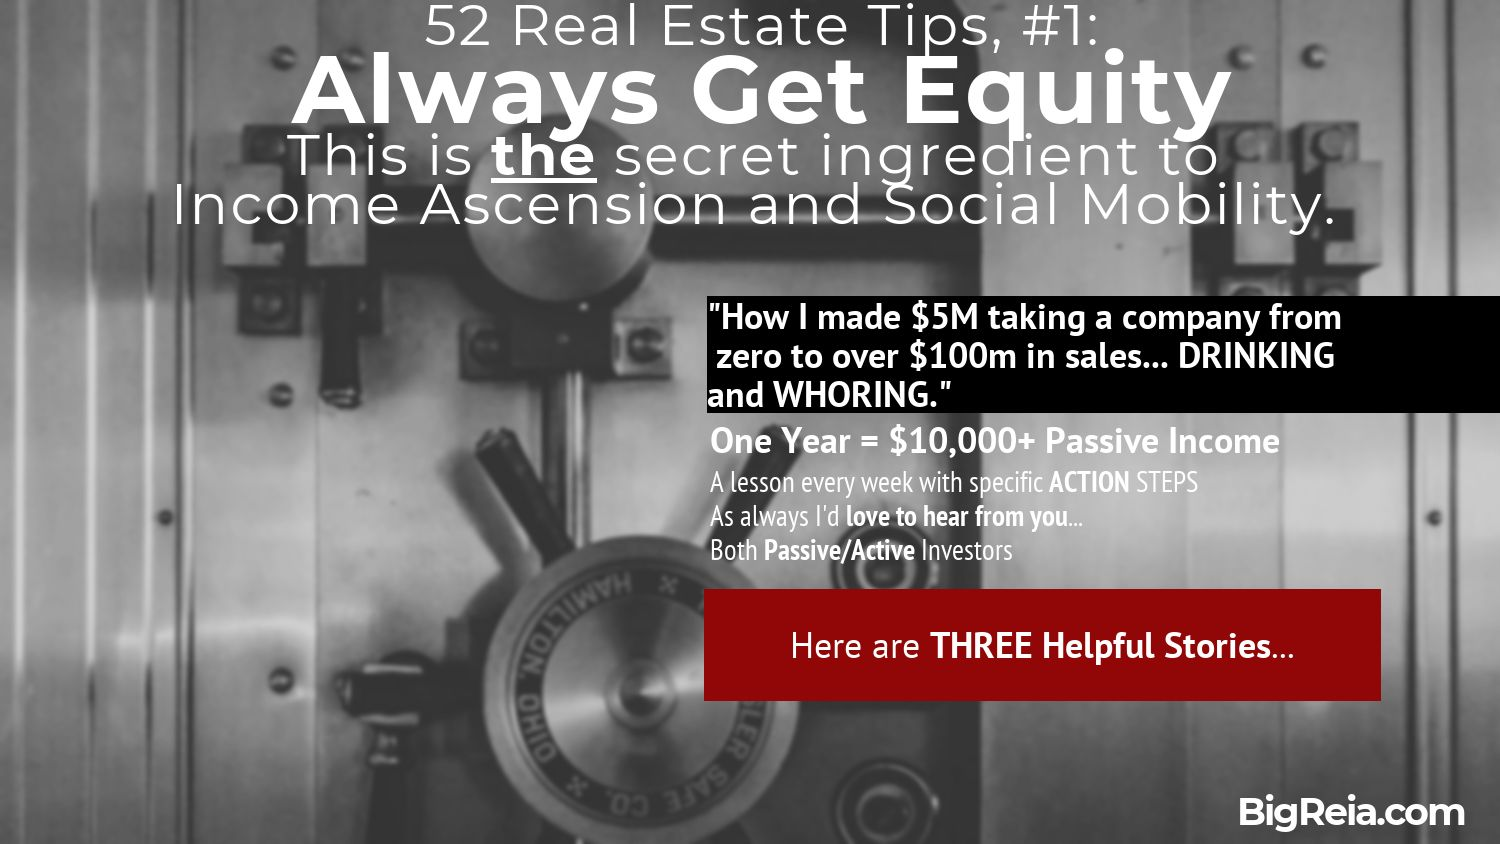 Always get equity introduction to the 5M student